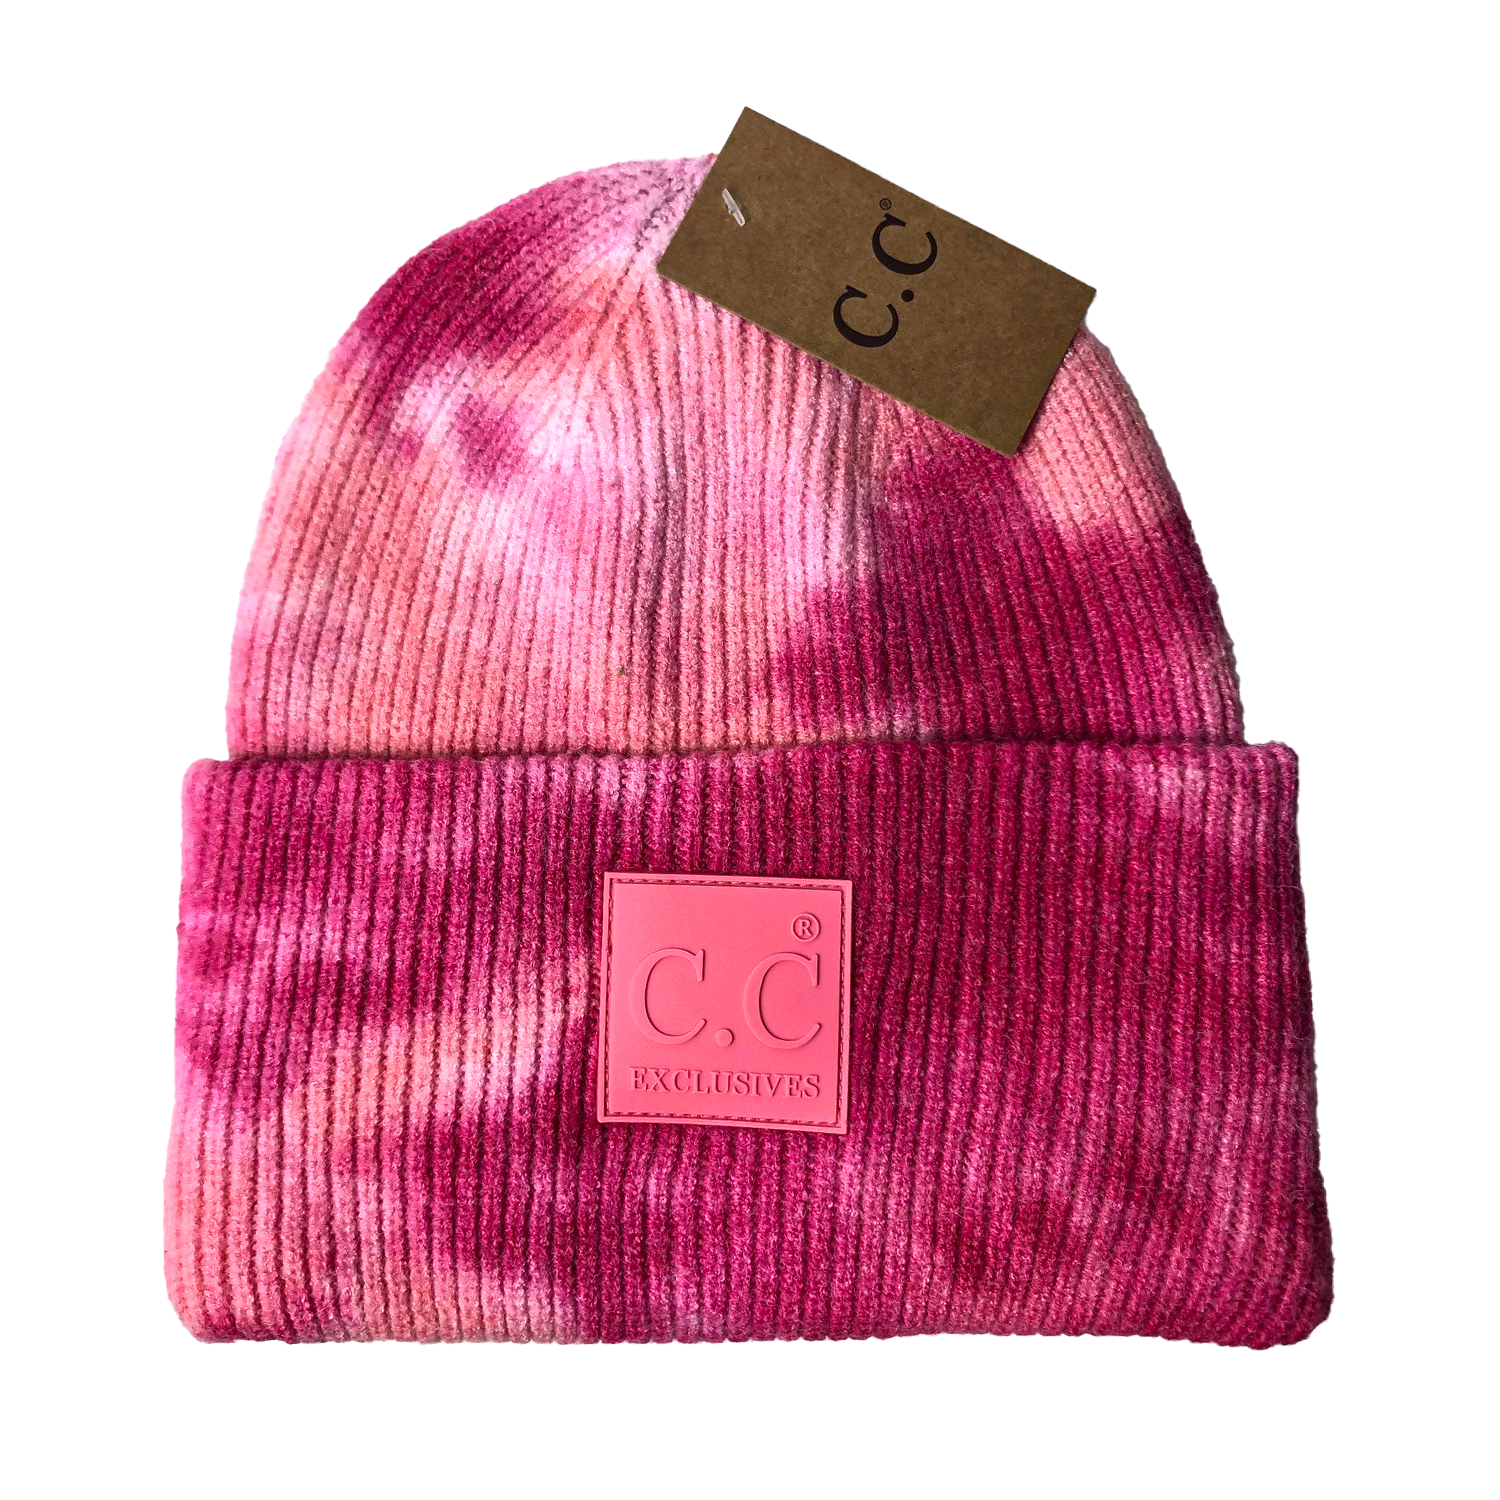 HAT-7380 Tie Dye Beanie with C.C Rubber Patch - Fuschia/Pink